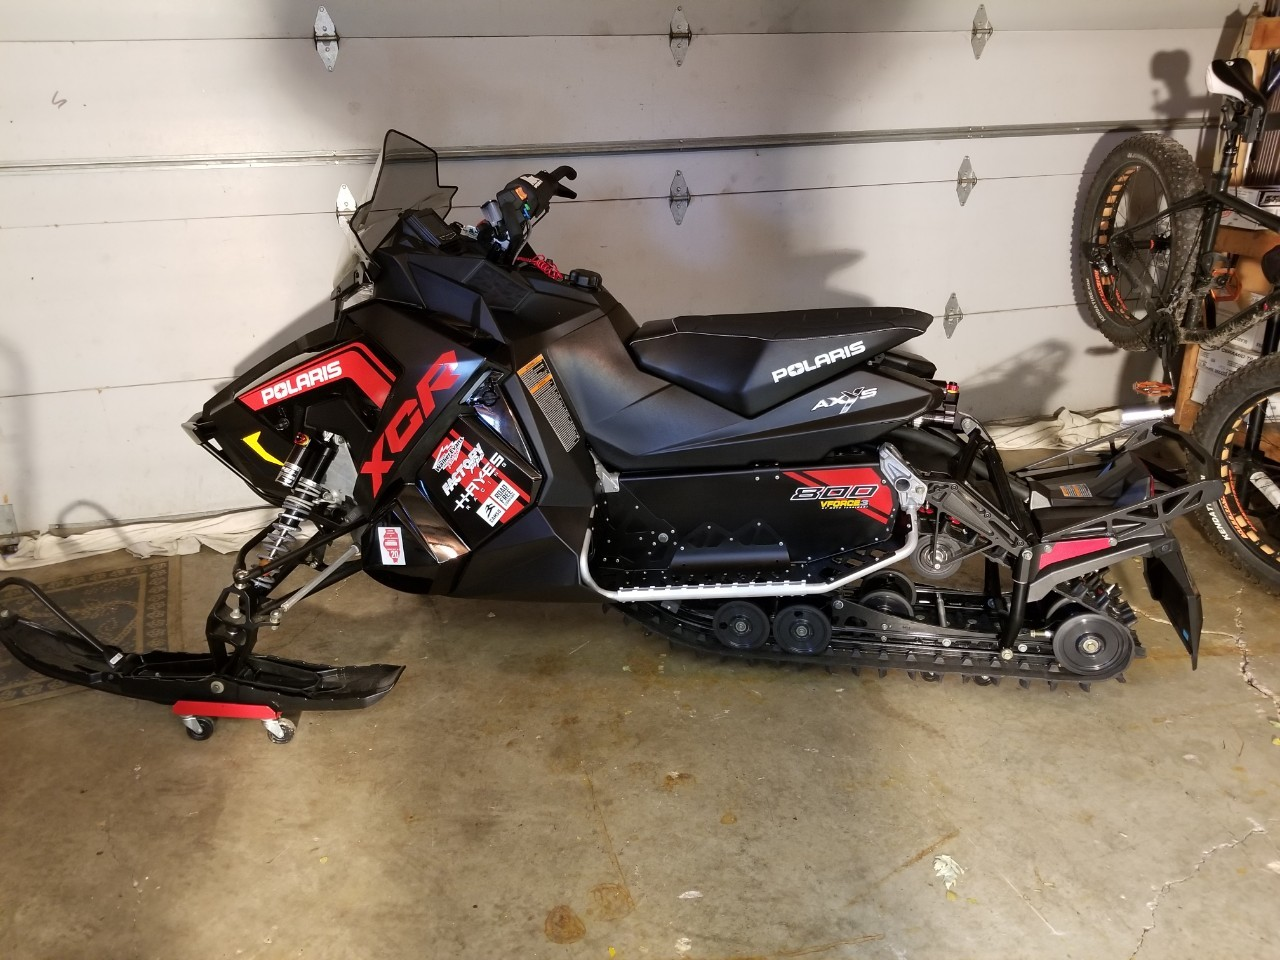 3825 Polaris Snowmobiles For Sale Snowmobile Trader Sonic 150r Honda Racing Red Solo